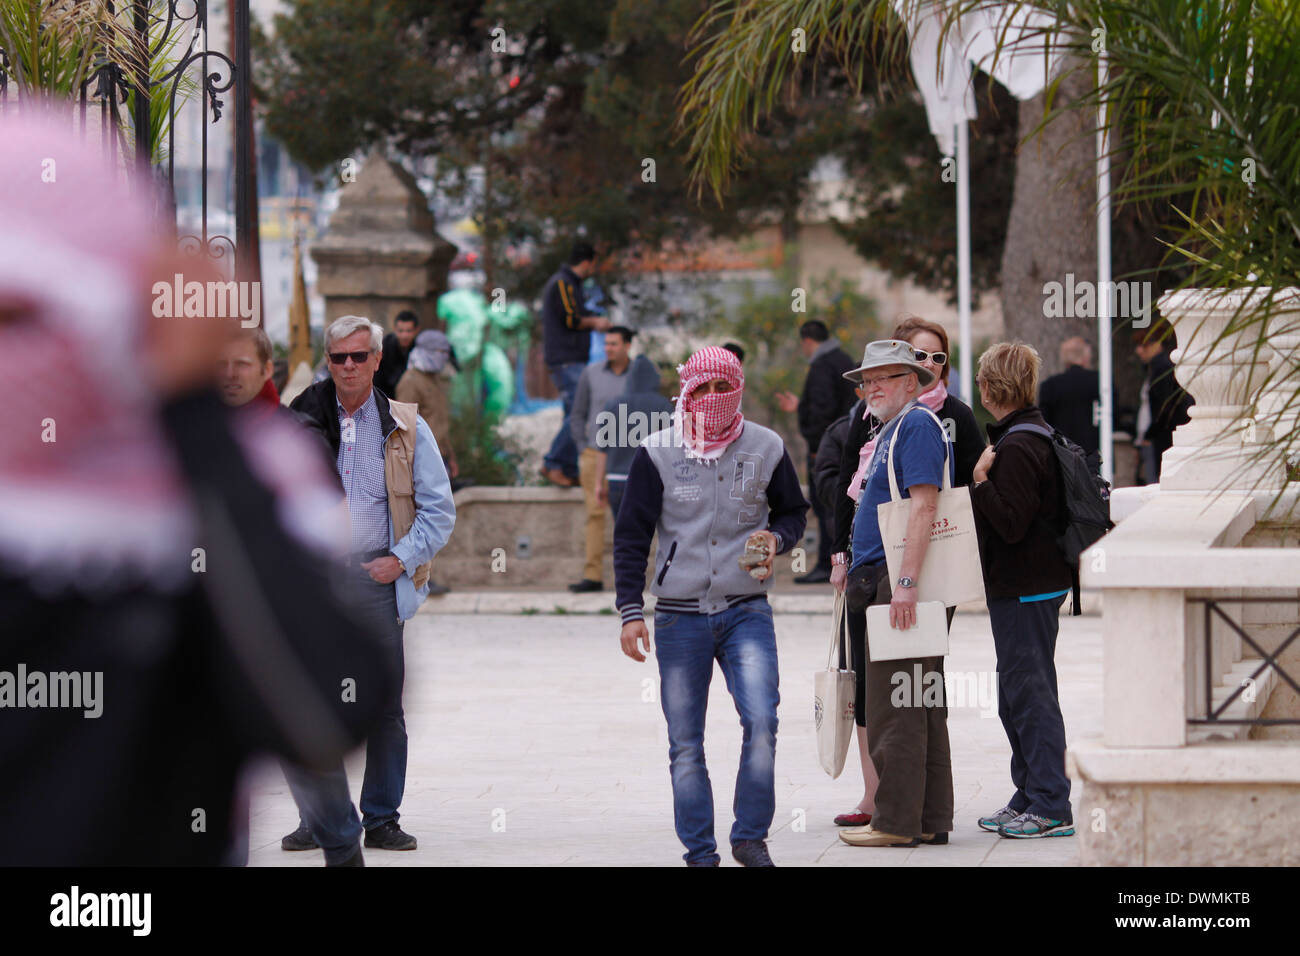 Masked Palestinians in front of Bethlehem Intercontinental Hotel among American tourists during clashes in the area. - Stock Image